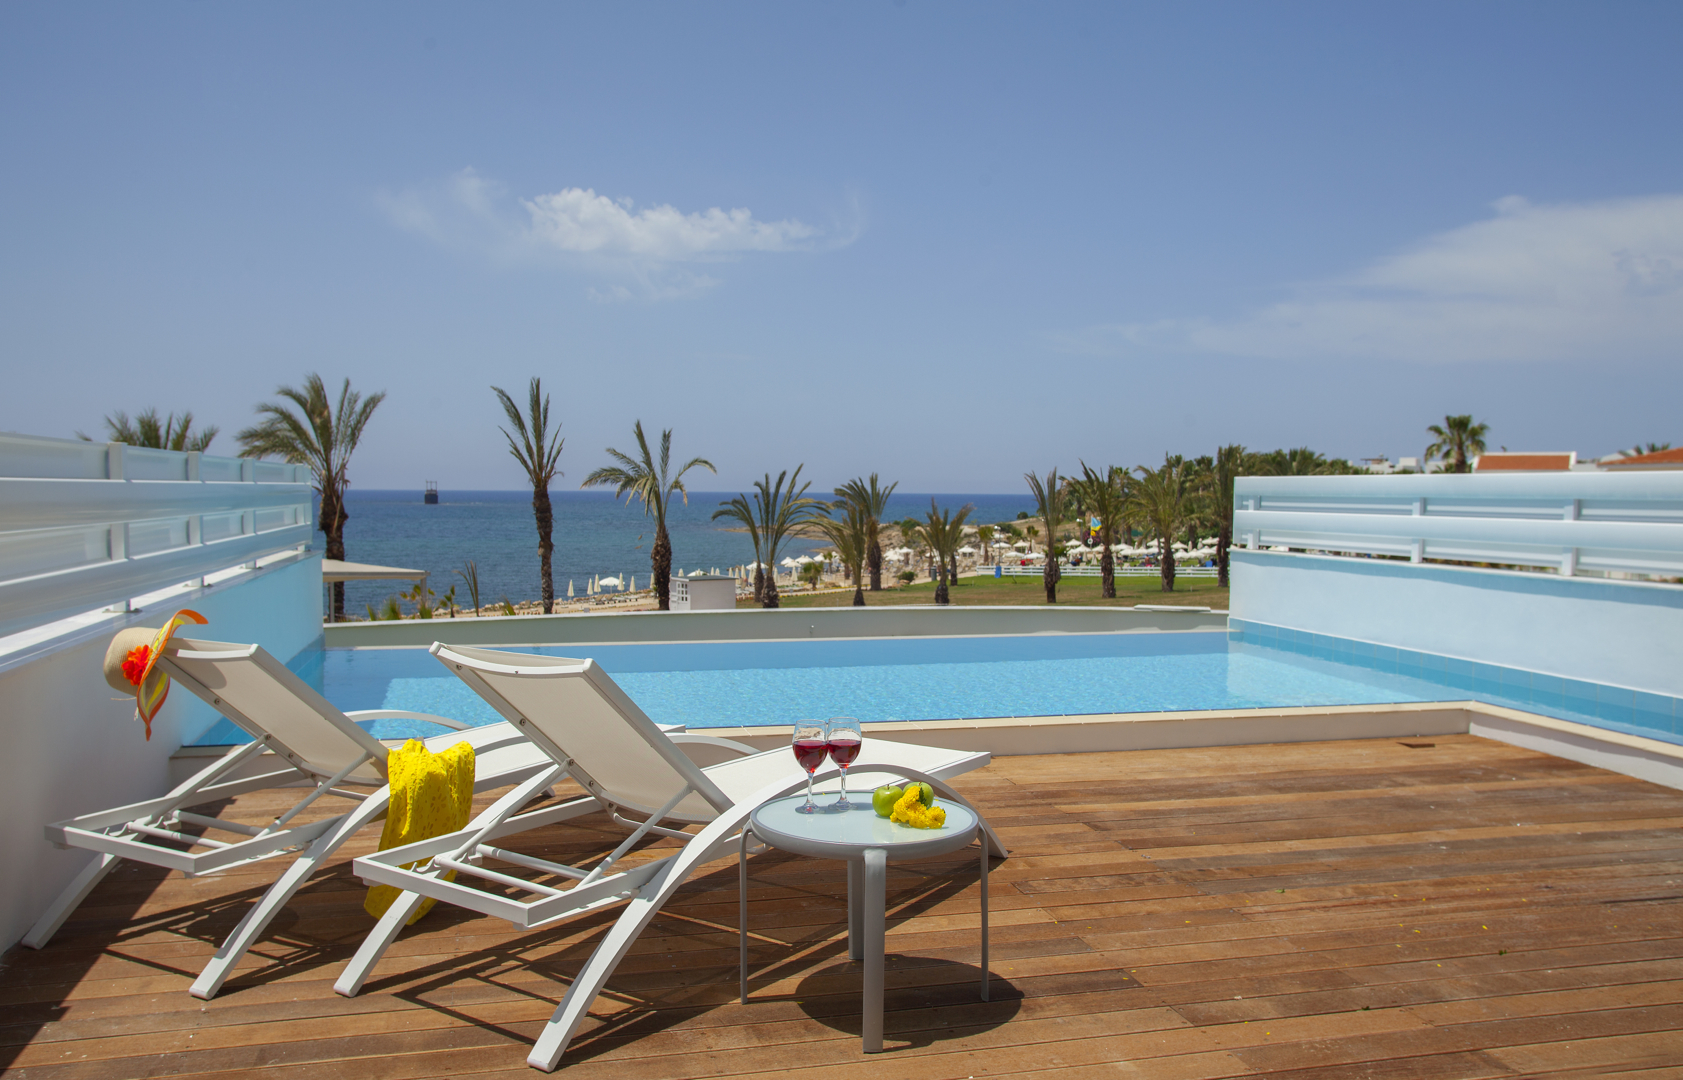 KING EVELTHON BEACH HOTEL 5* - Suite with private pool front sea view